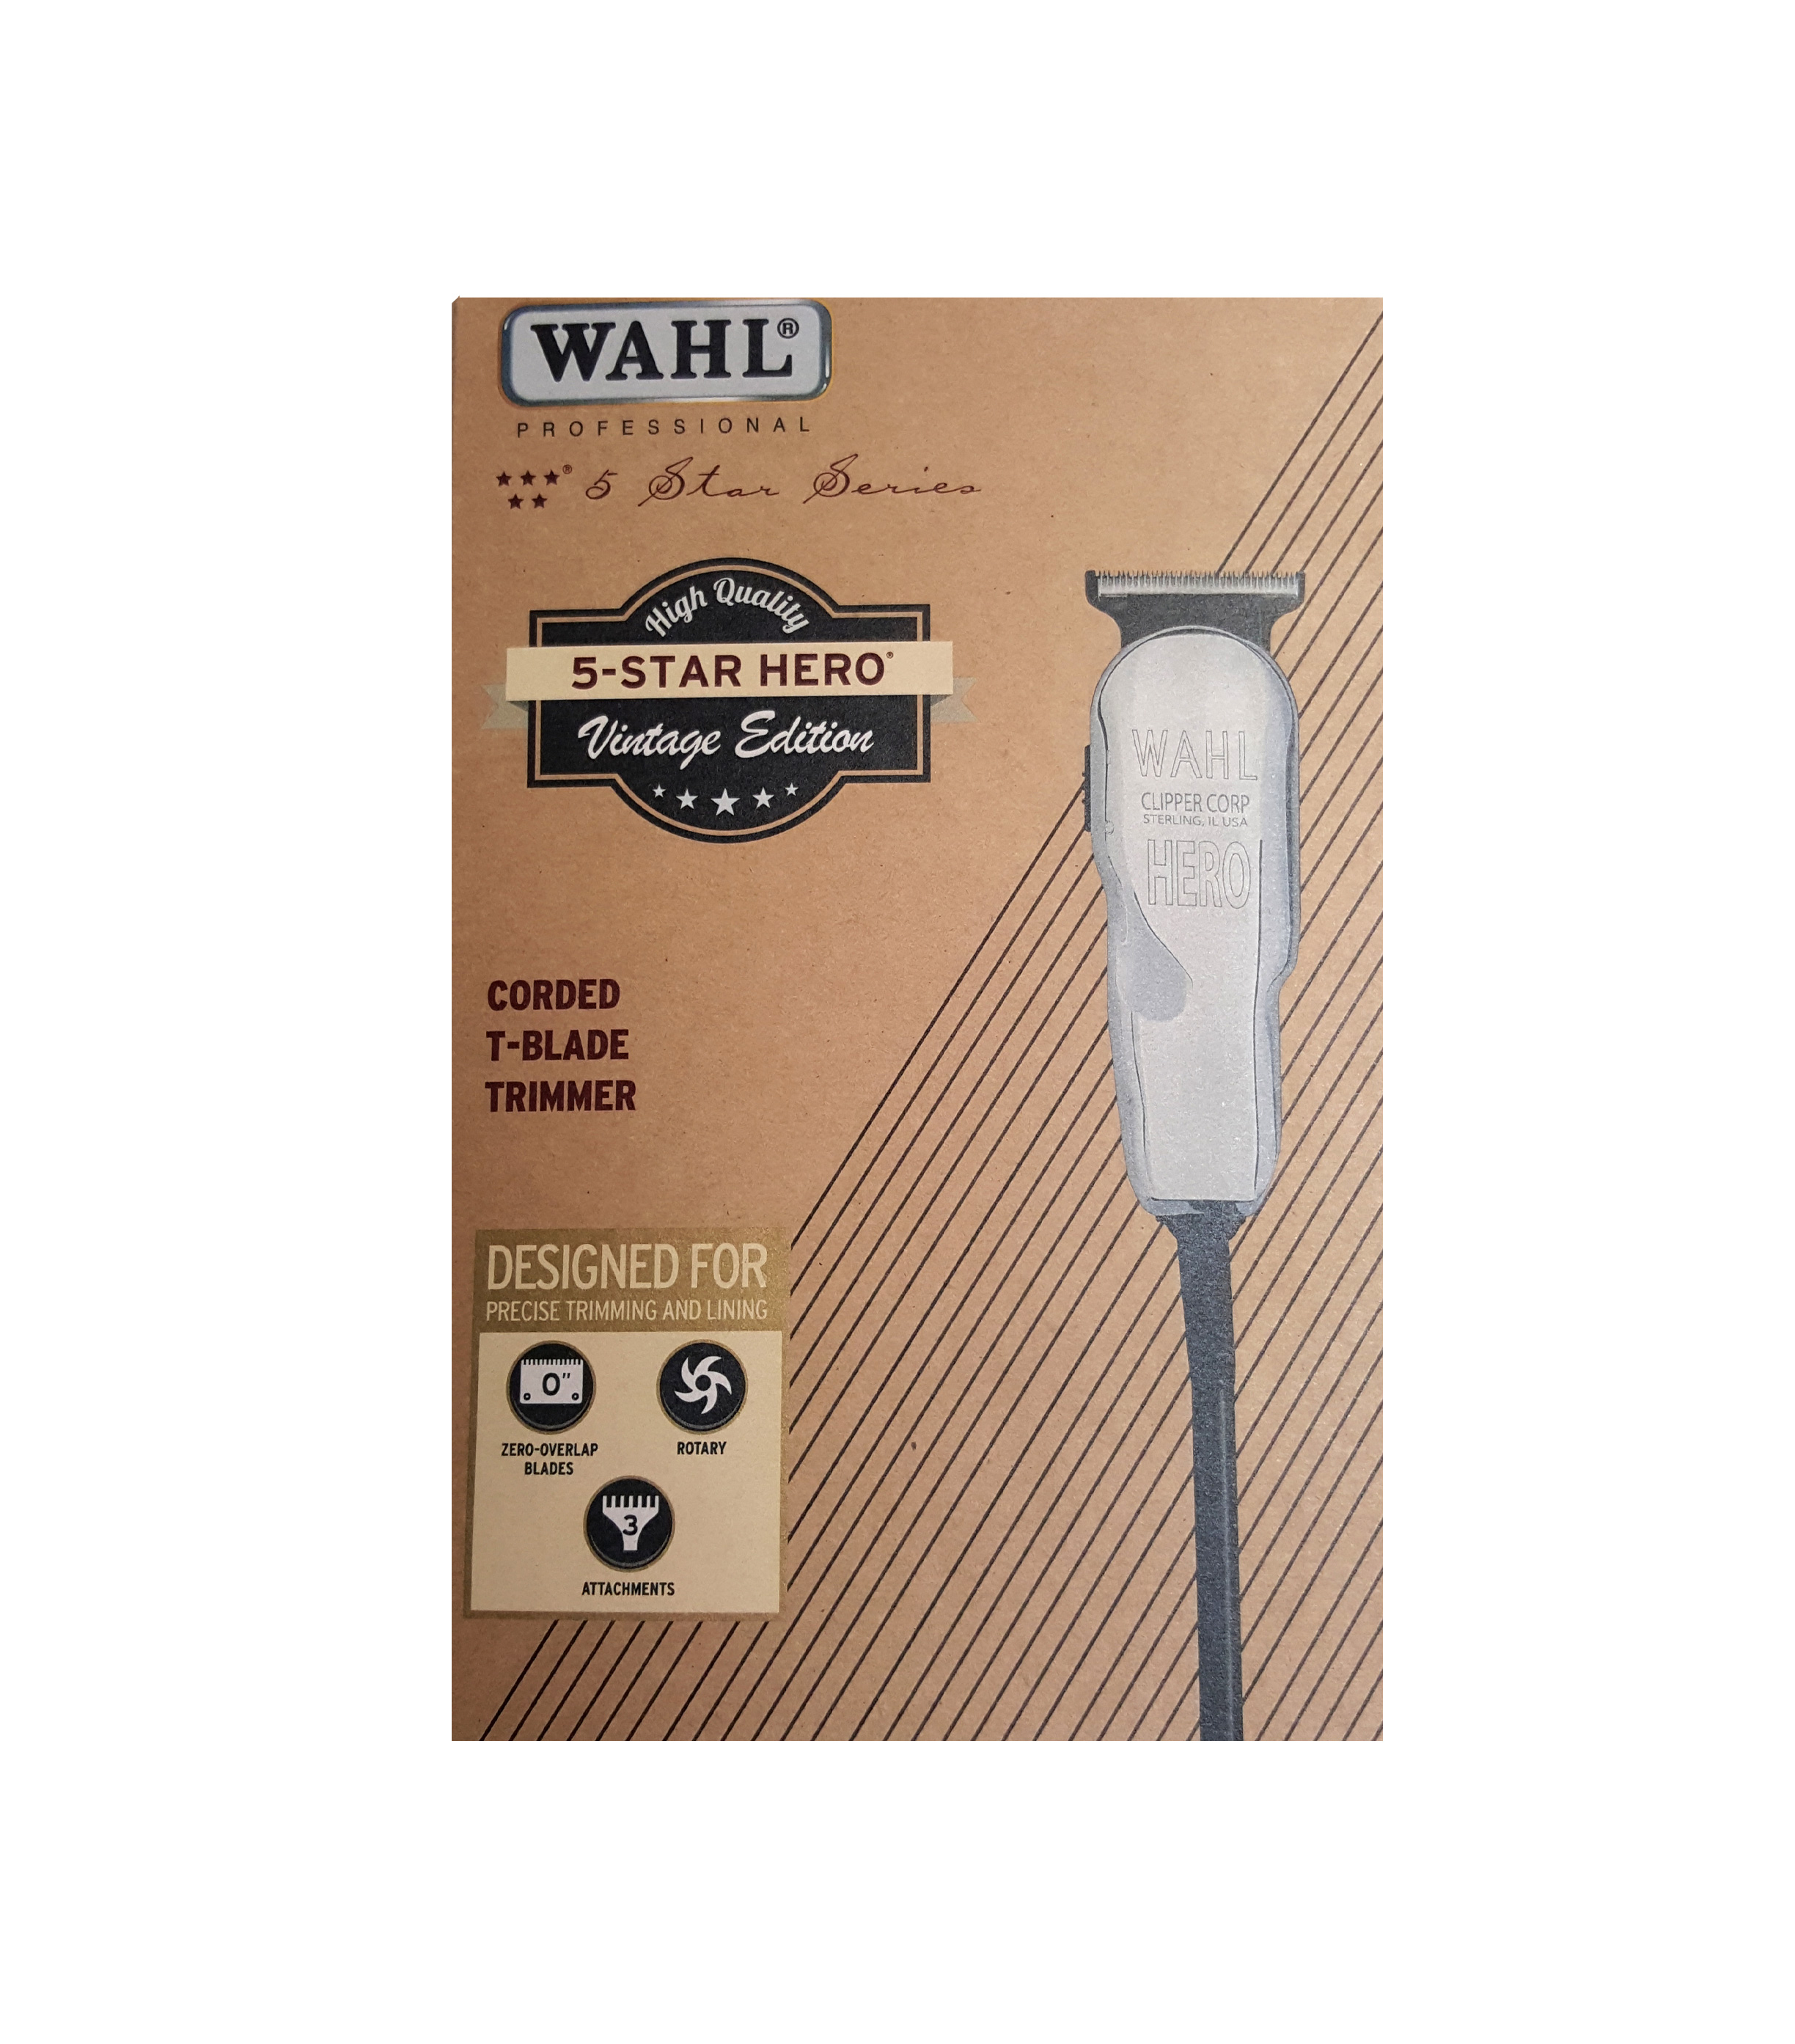 Wahl 5 Star Hero Vintage Edition 8991 300 Barber Depot Clipper Classic Series 1 Usa